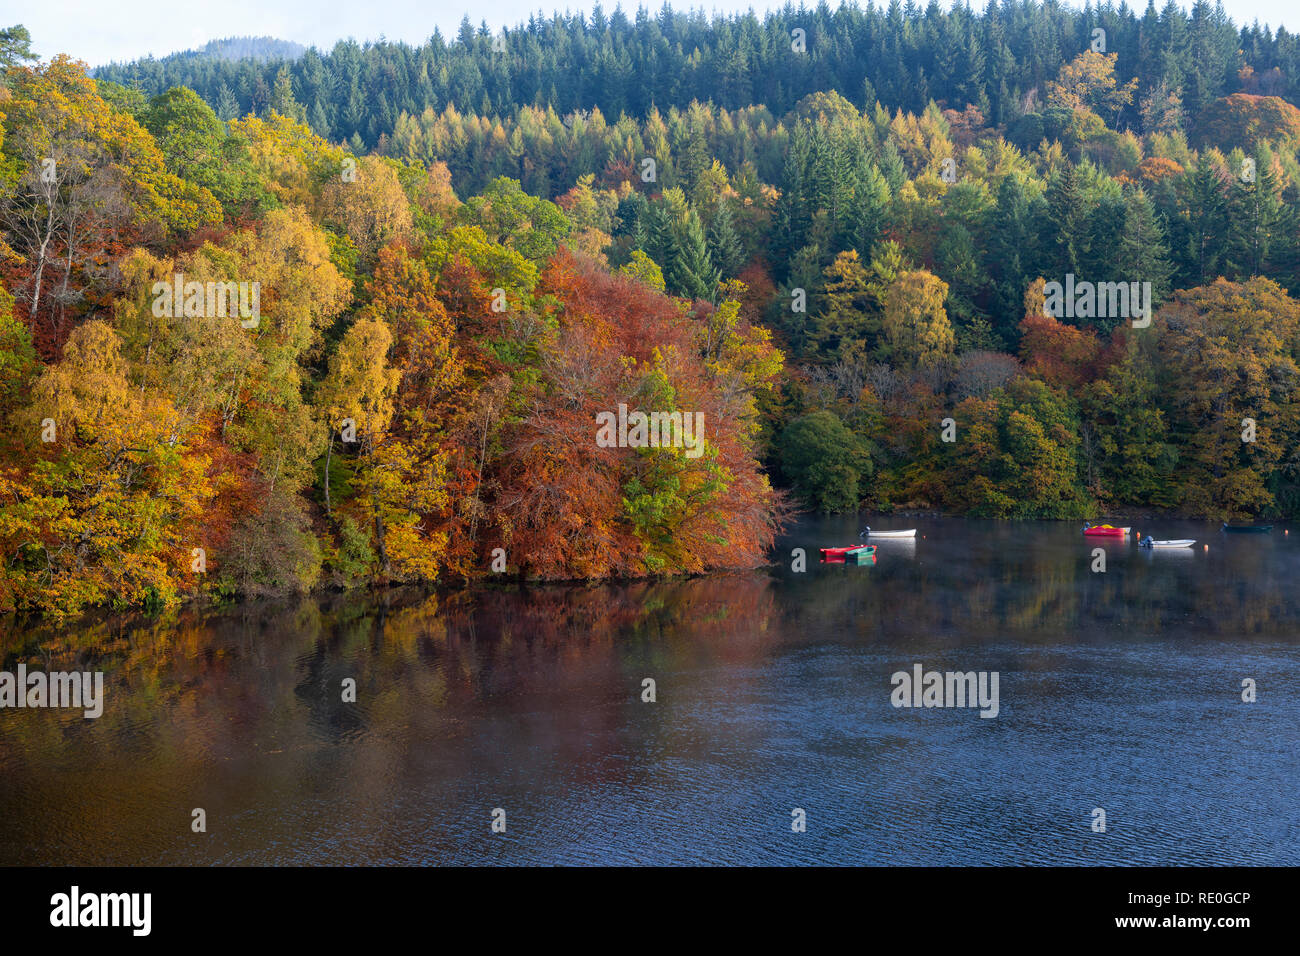 Colourful boats on Loch Faskally near Pitlochry, Perthshire, Scotland - Stock Image